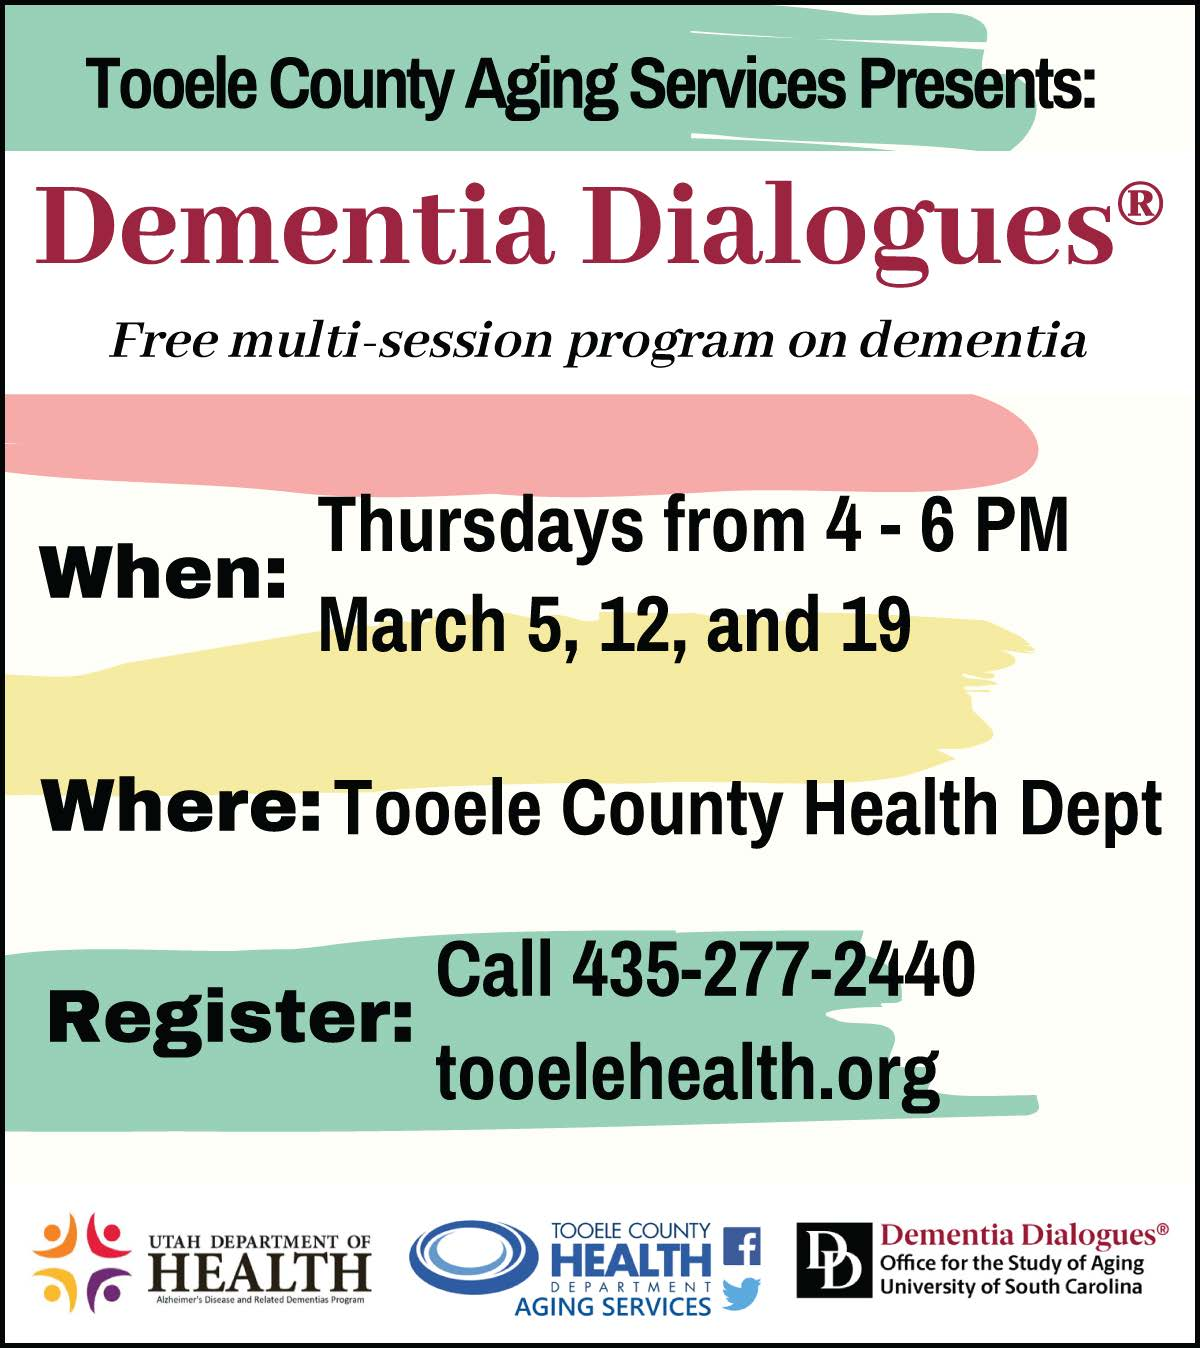 Dementia Dialogues @ Tooele County Health Department